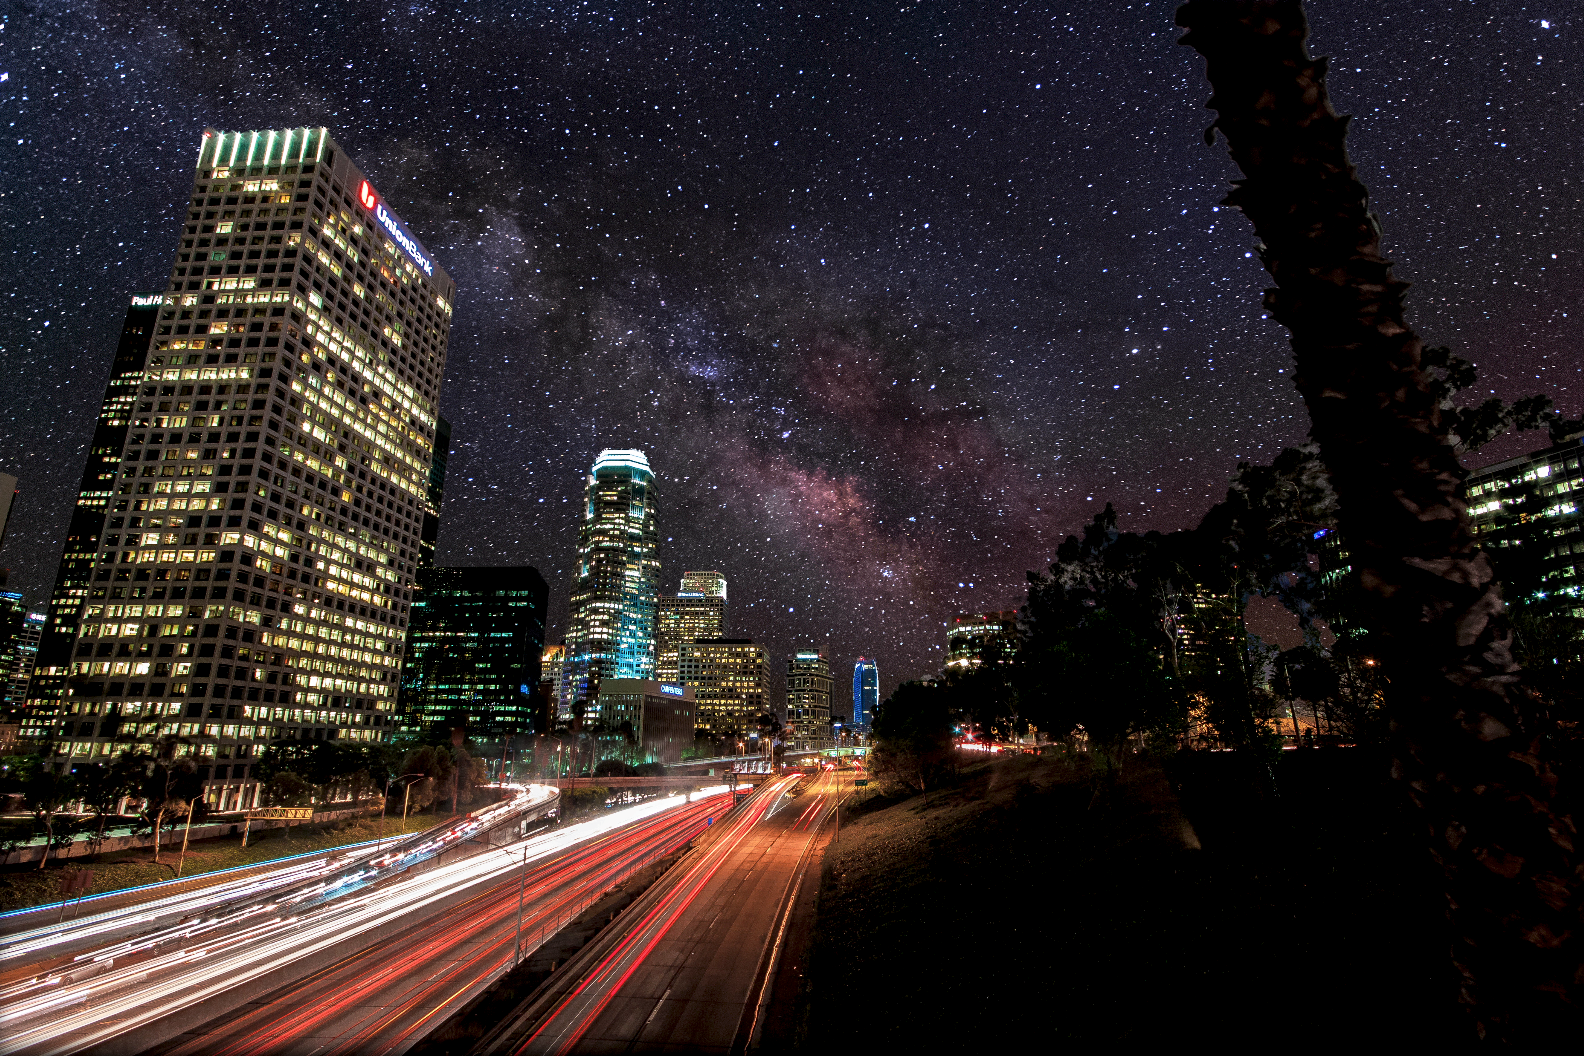 Light Pollution Is No Match for the Milky Way in These Stunning Night Sky Timelapses